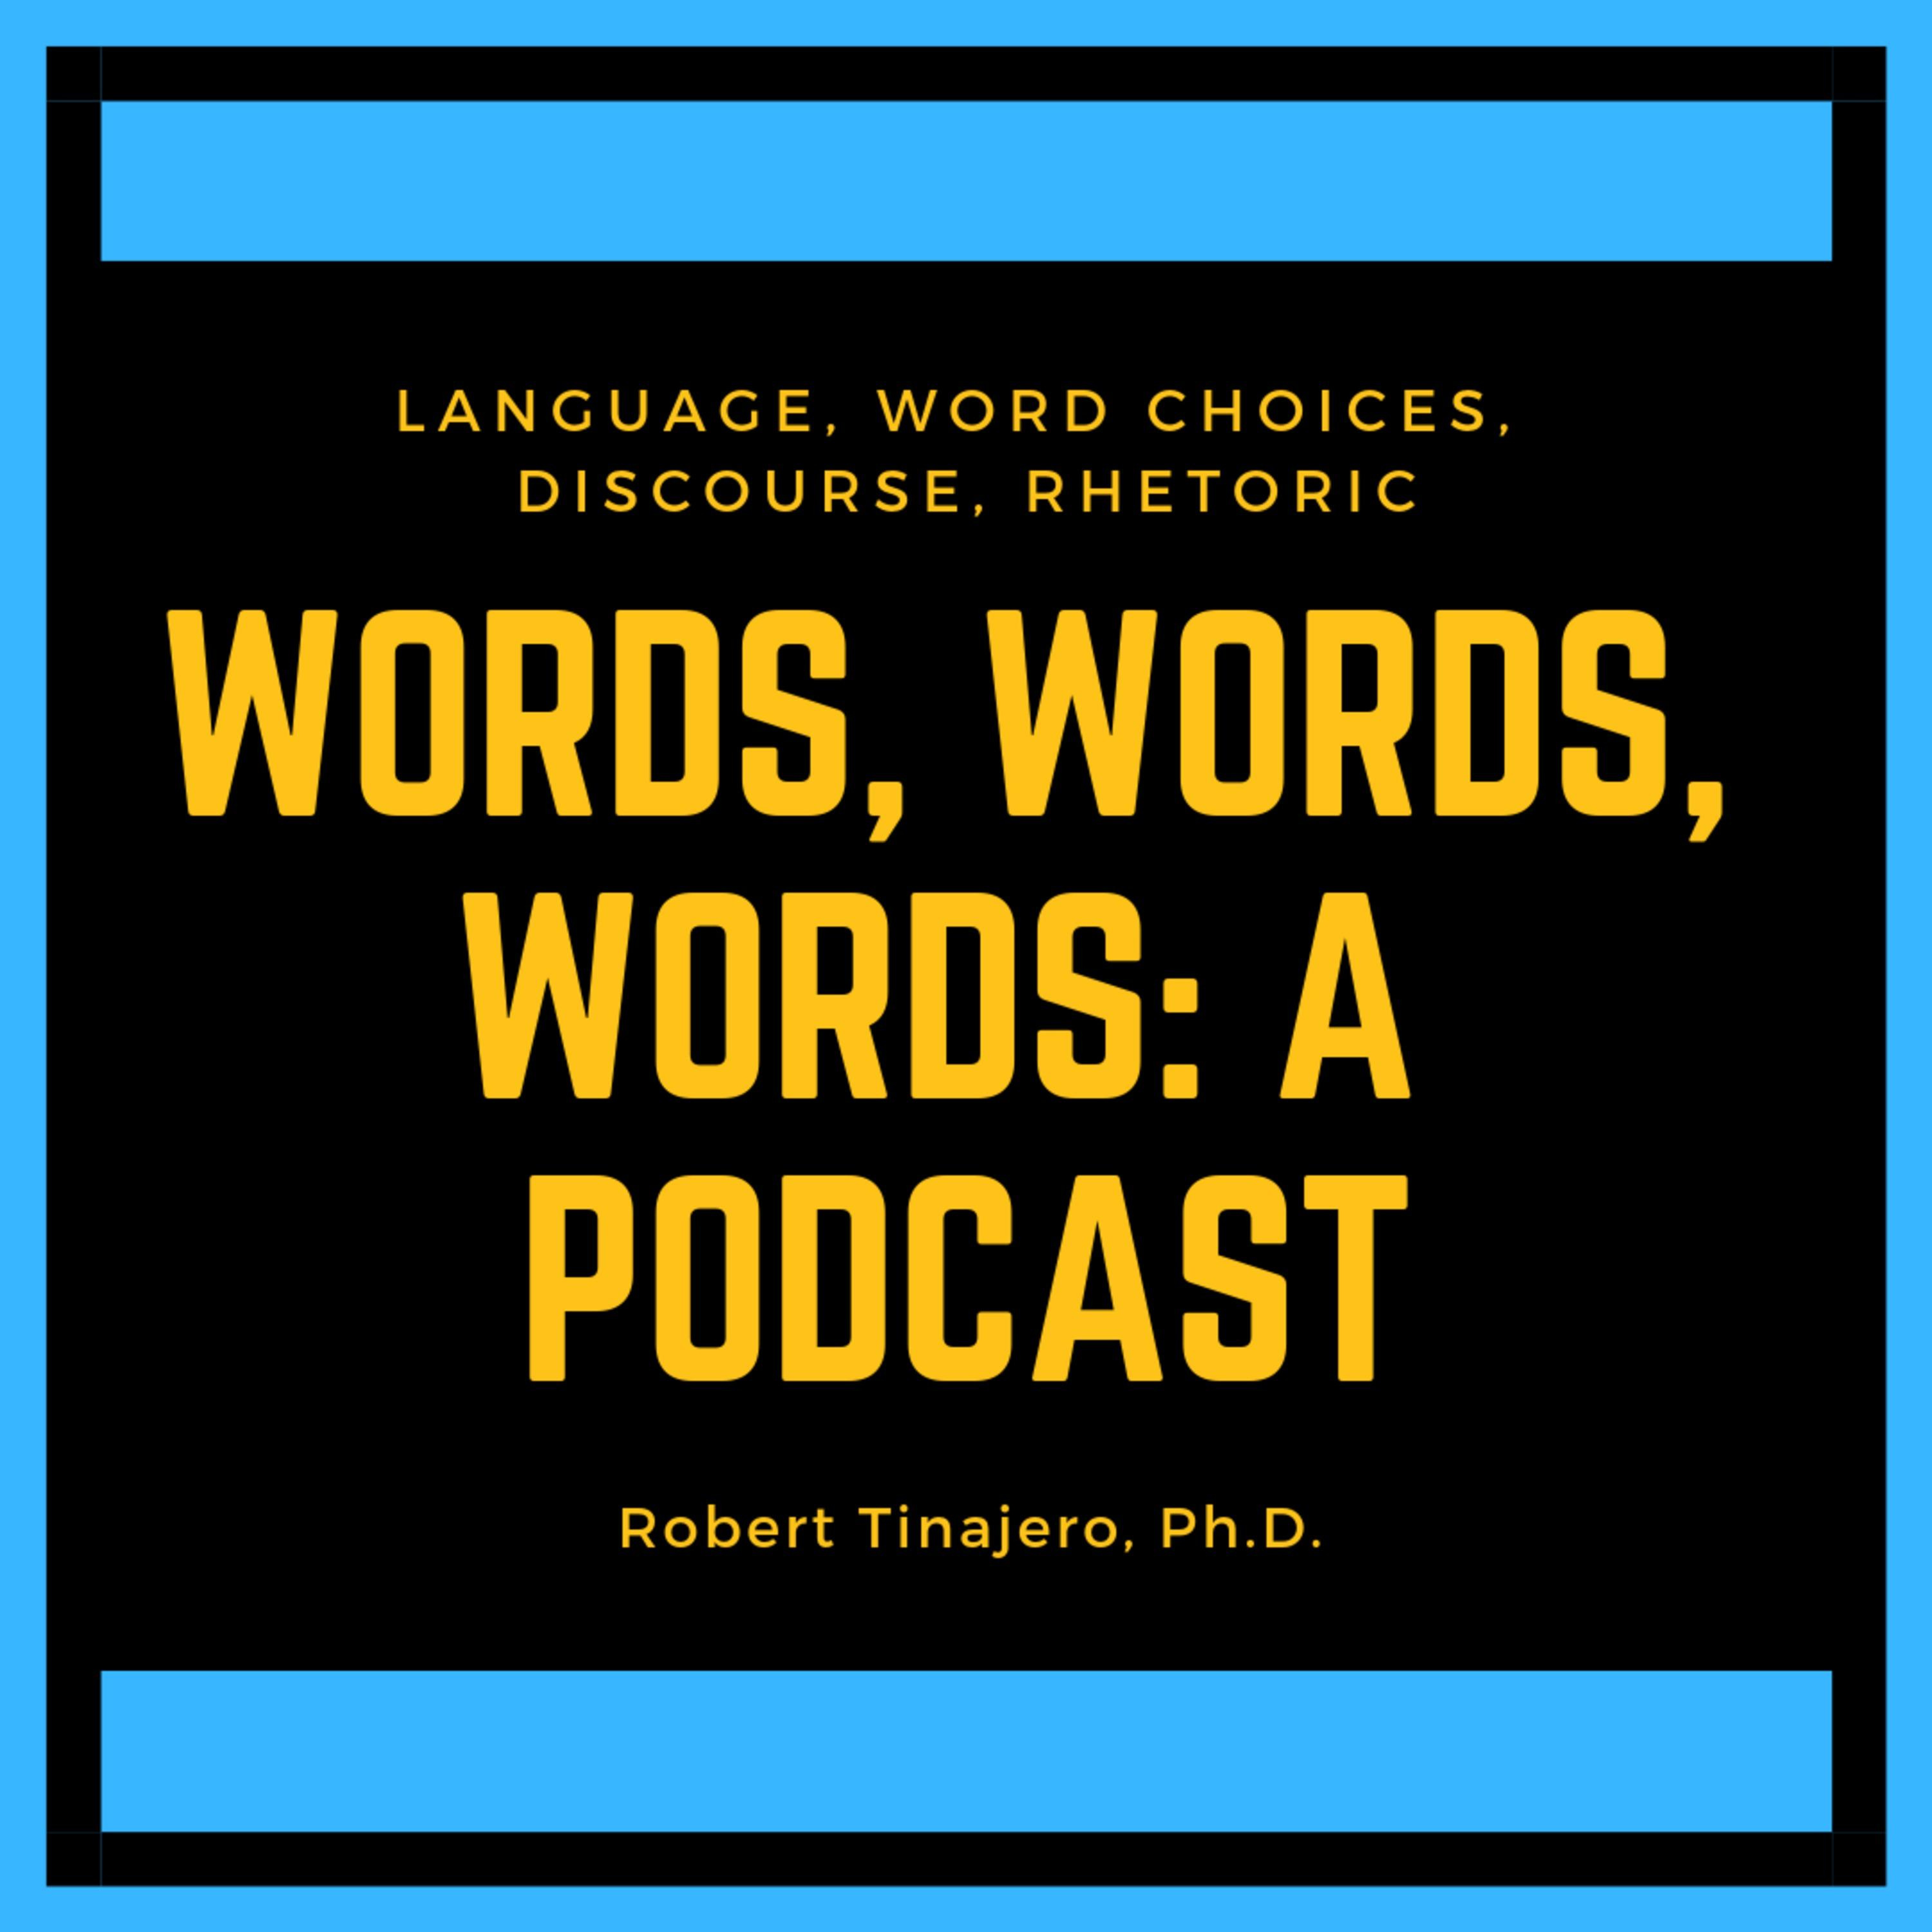 Words, Words, Words: A Podcast by Robert Tinajero | Listen